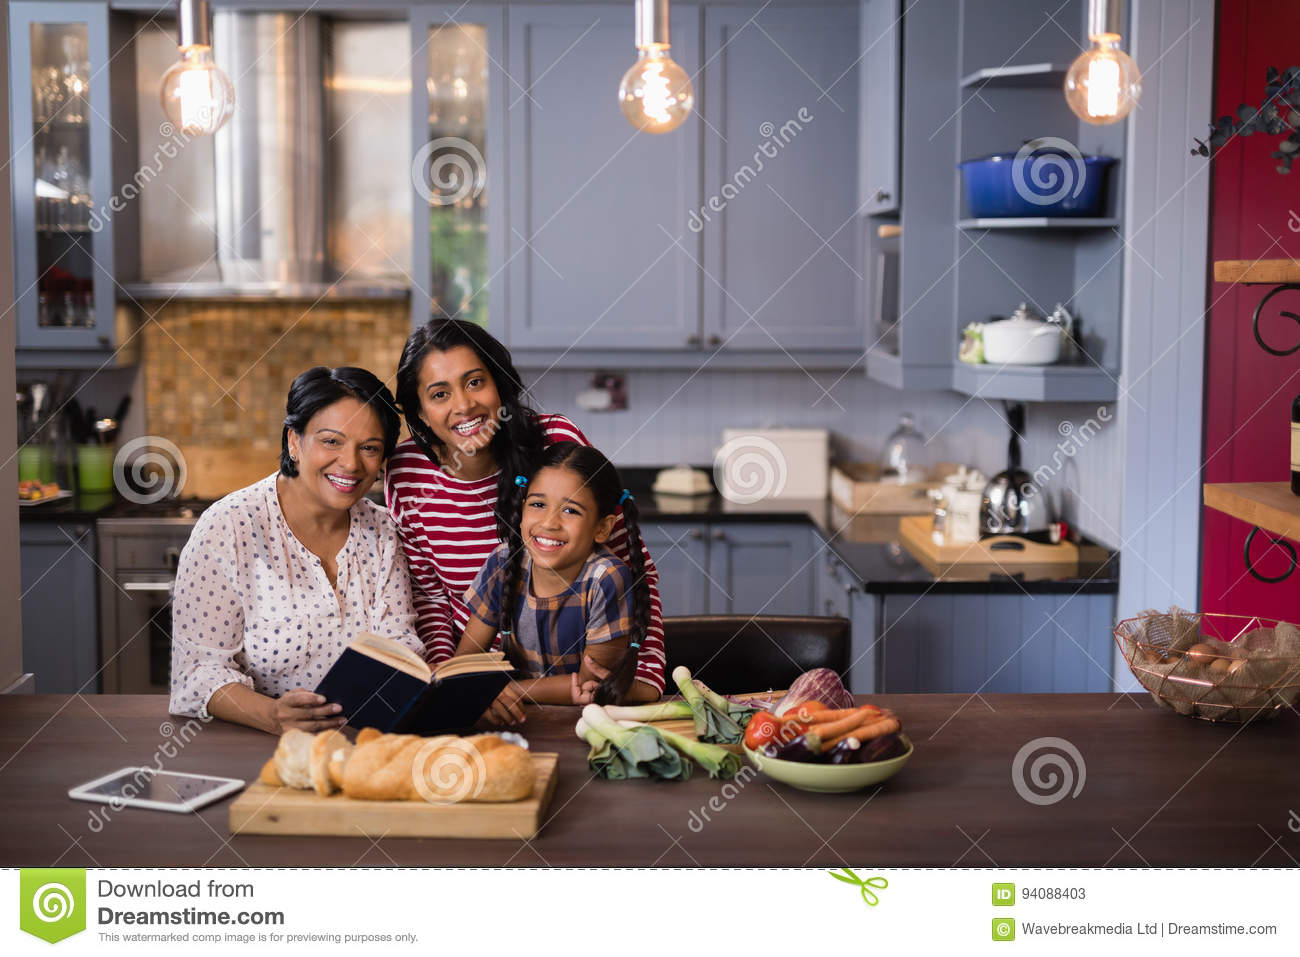 Portrait of smiling multi-generation family sitting in kitchen